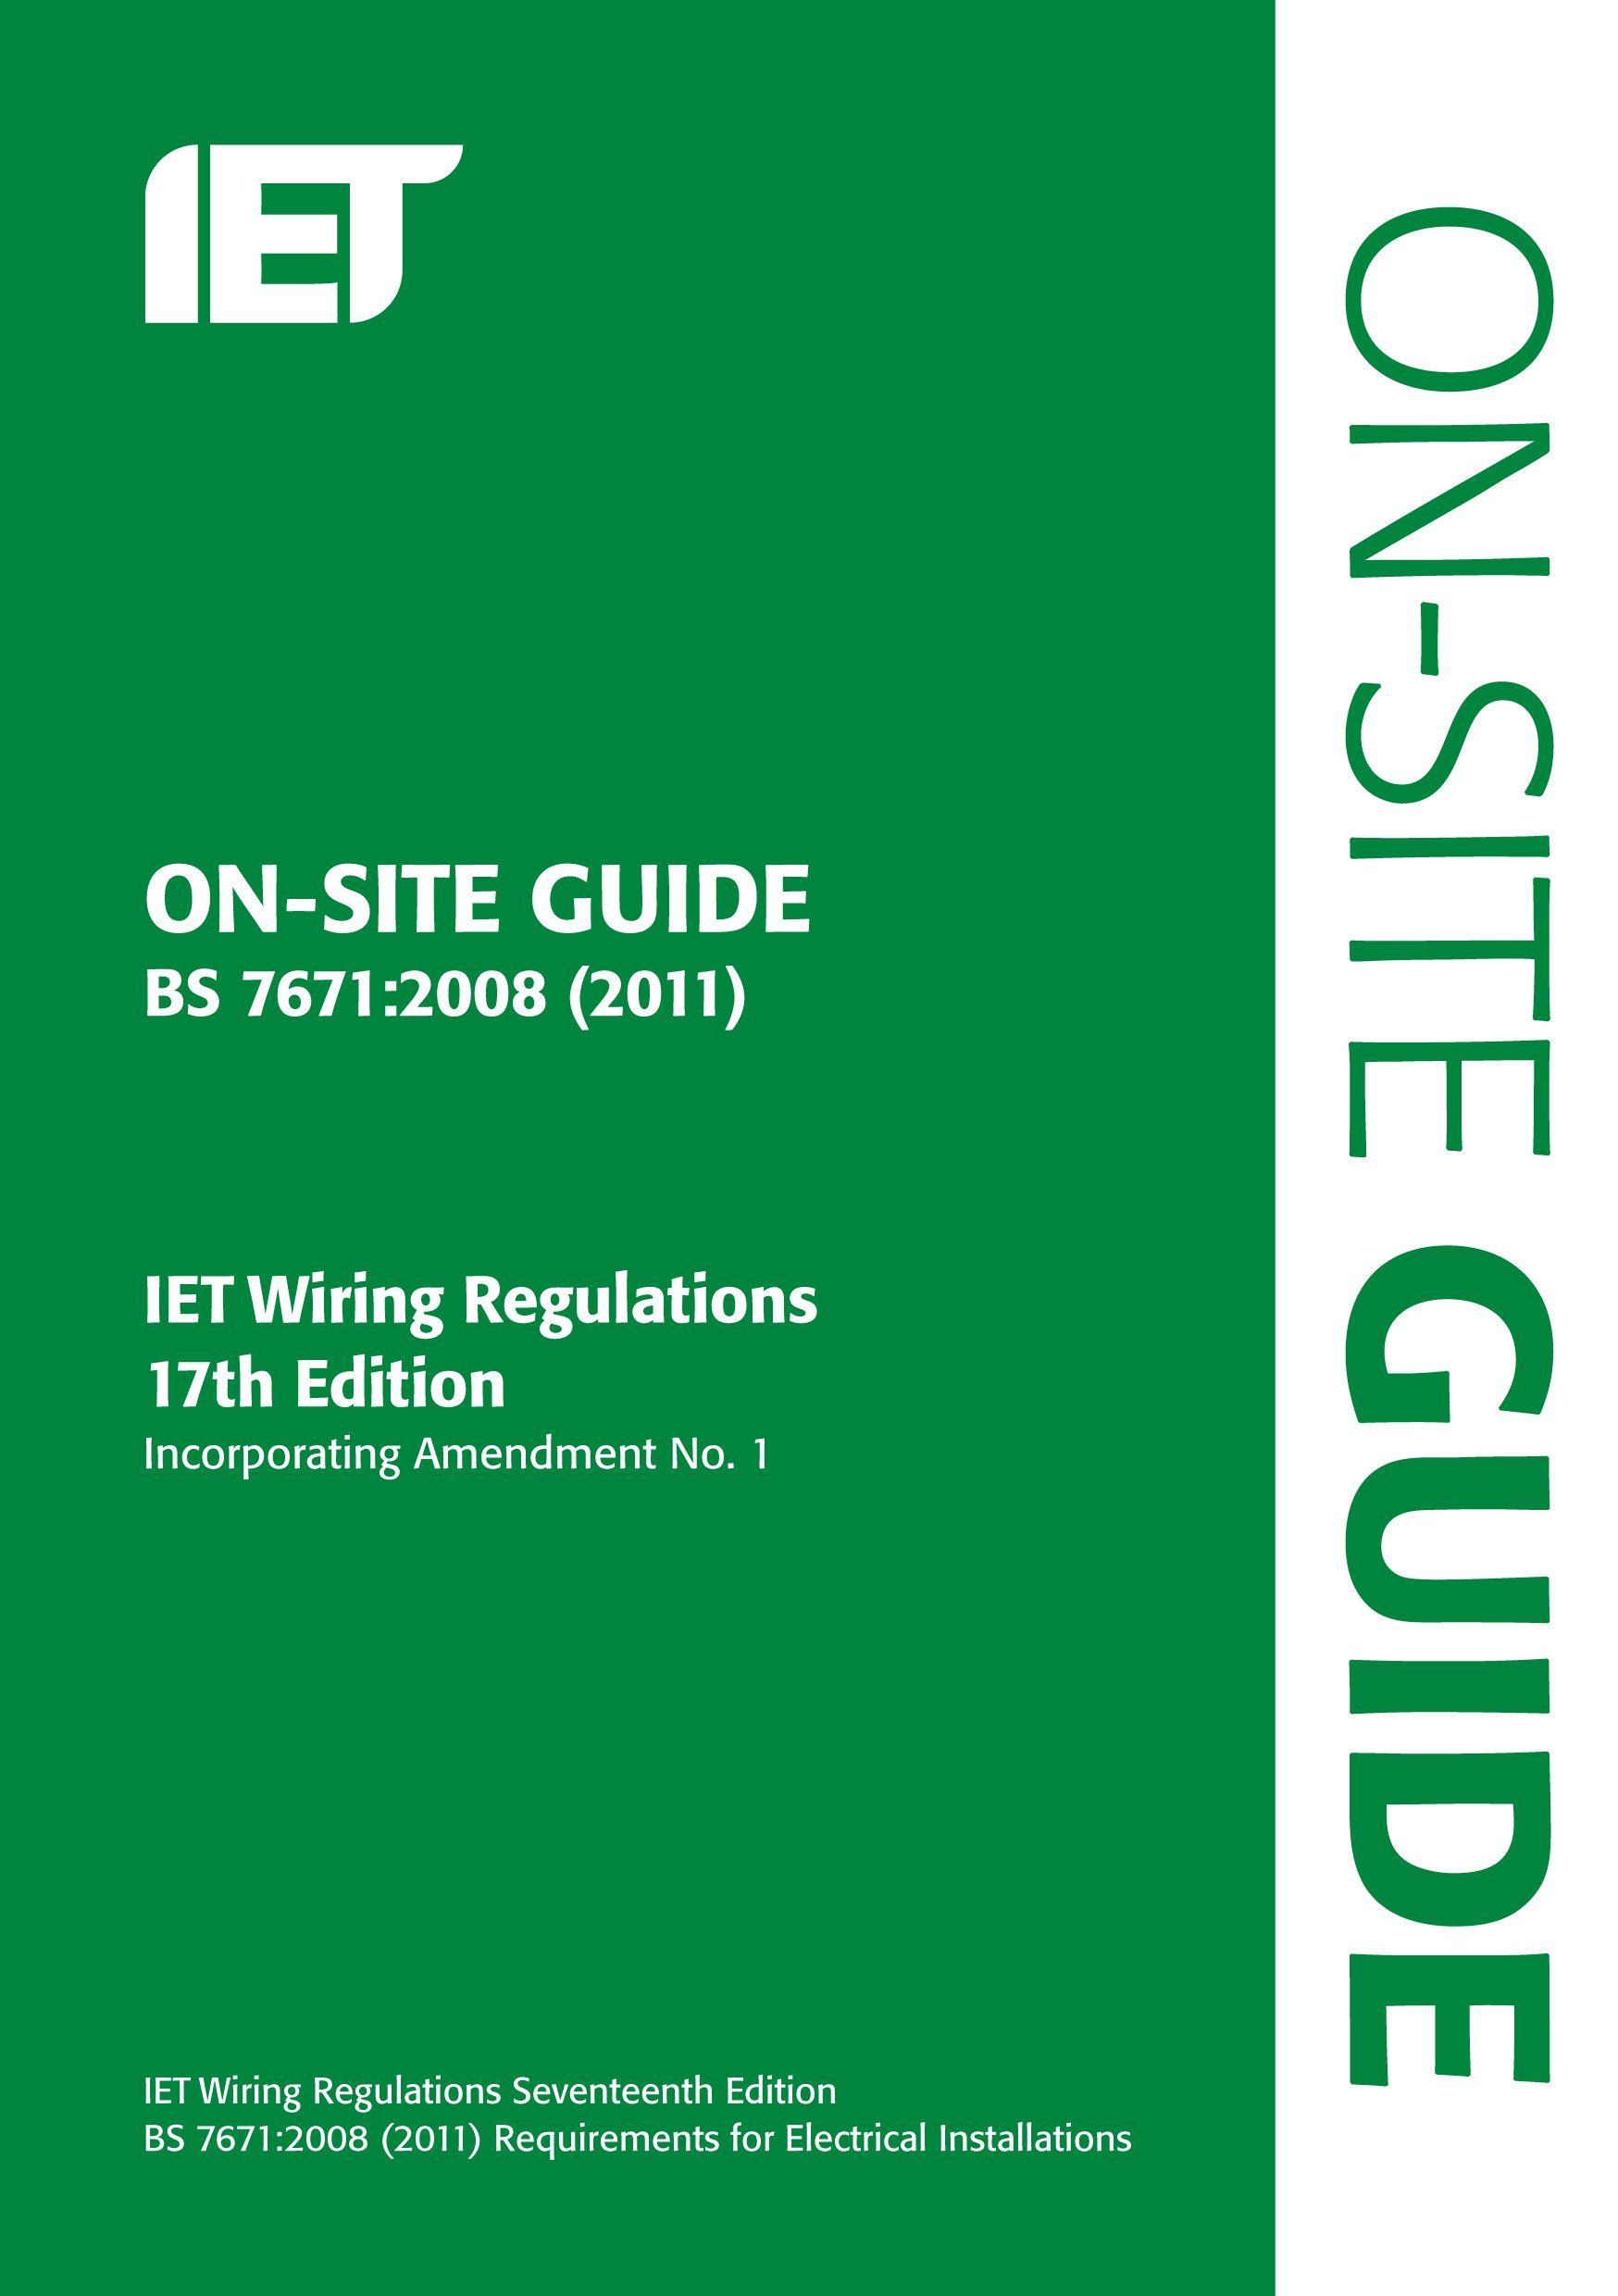 on site guide bs 7671 2008 wiring regulations incorporating rh amazon co uk 17th edition wiring regs exam questions 17th edition wiring regs mock exam